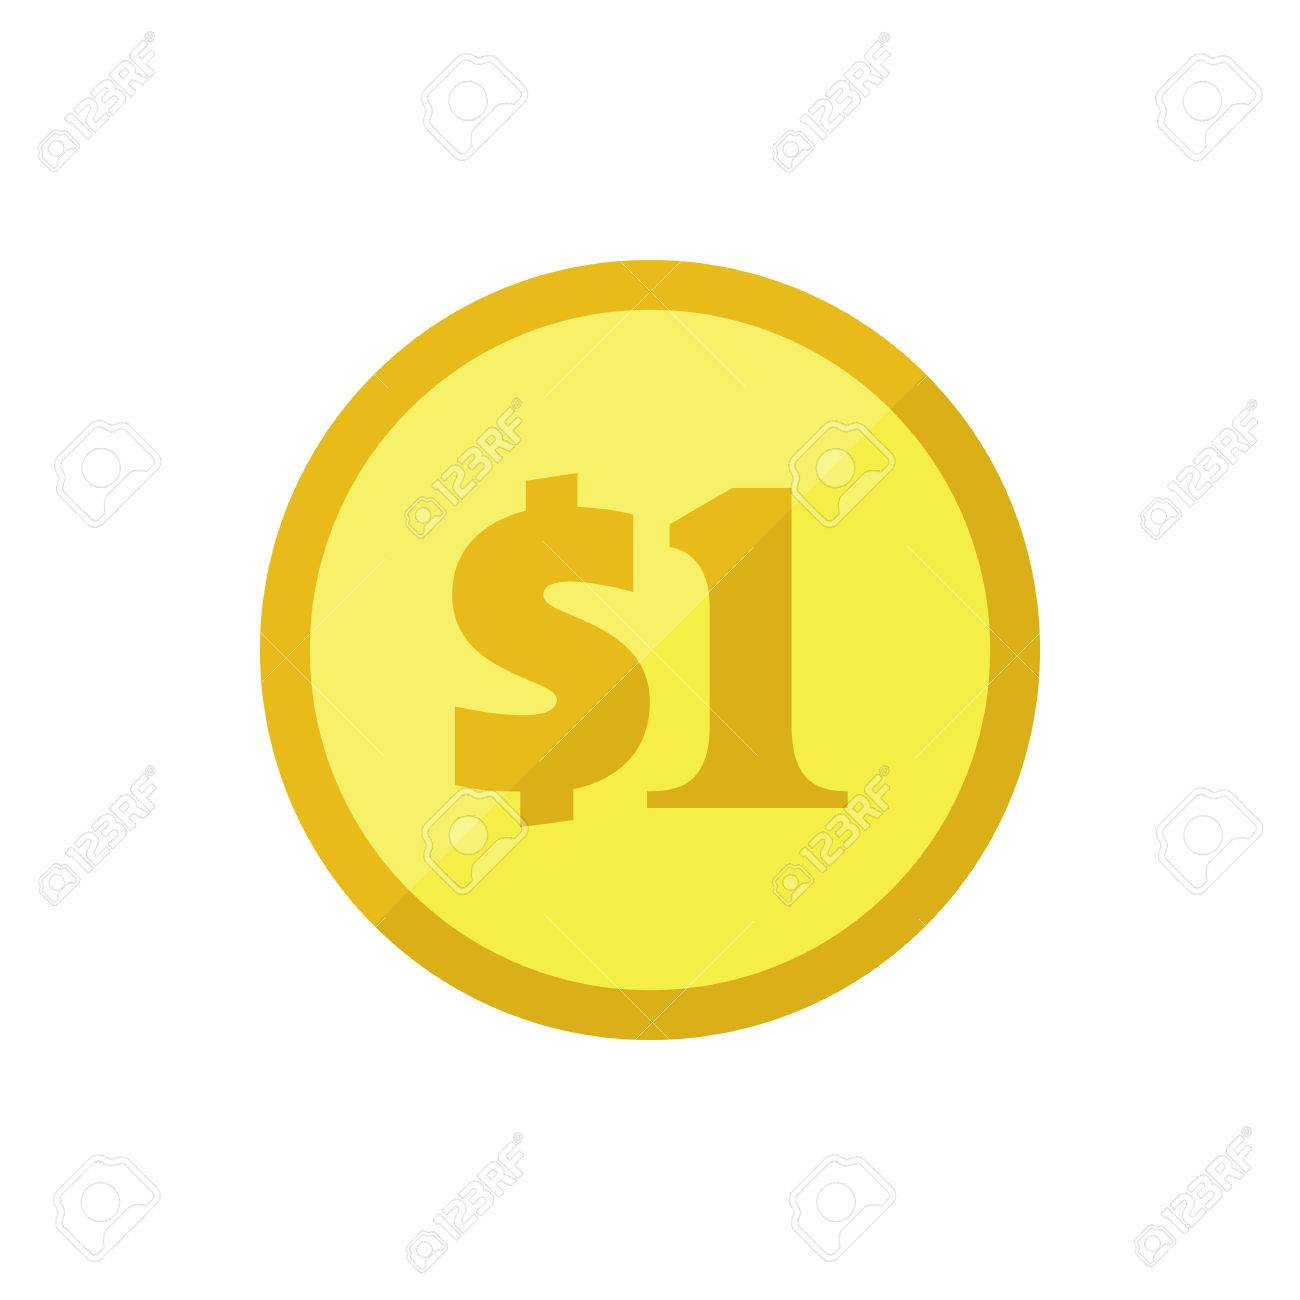 Us Dollar Golden Coin Flat Vector Icon American Currency Symbol